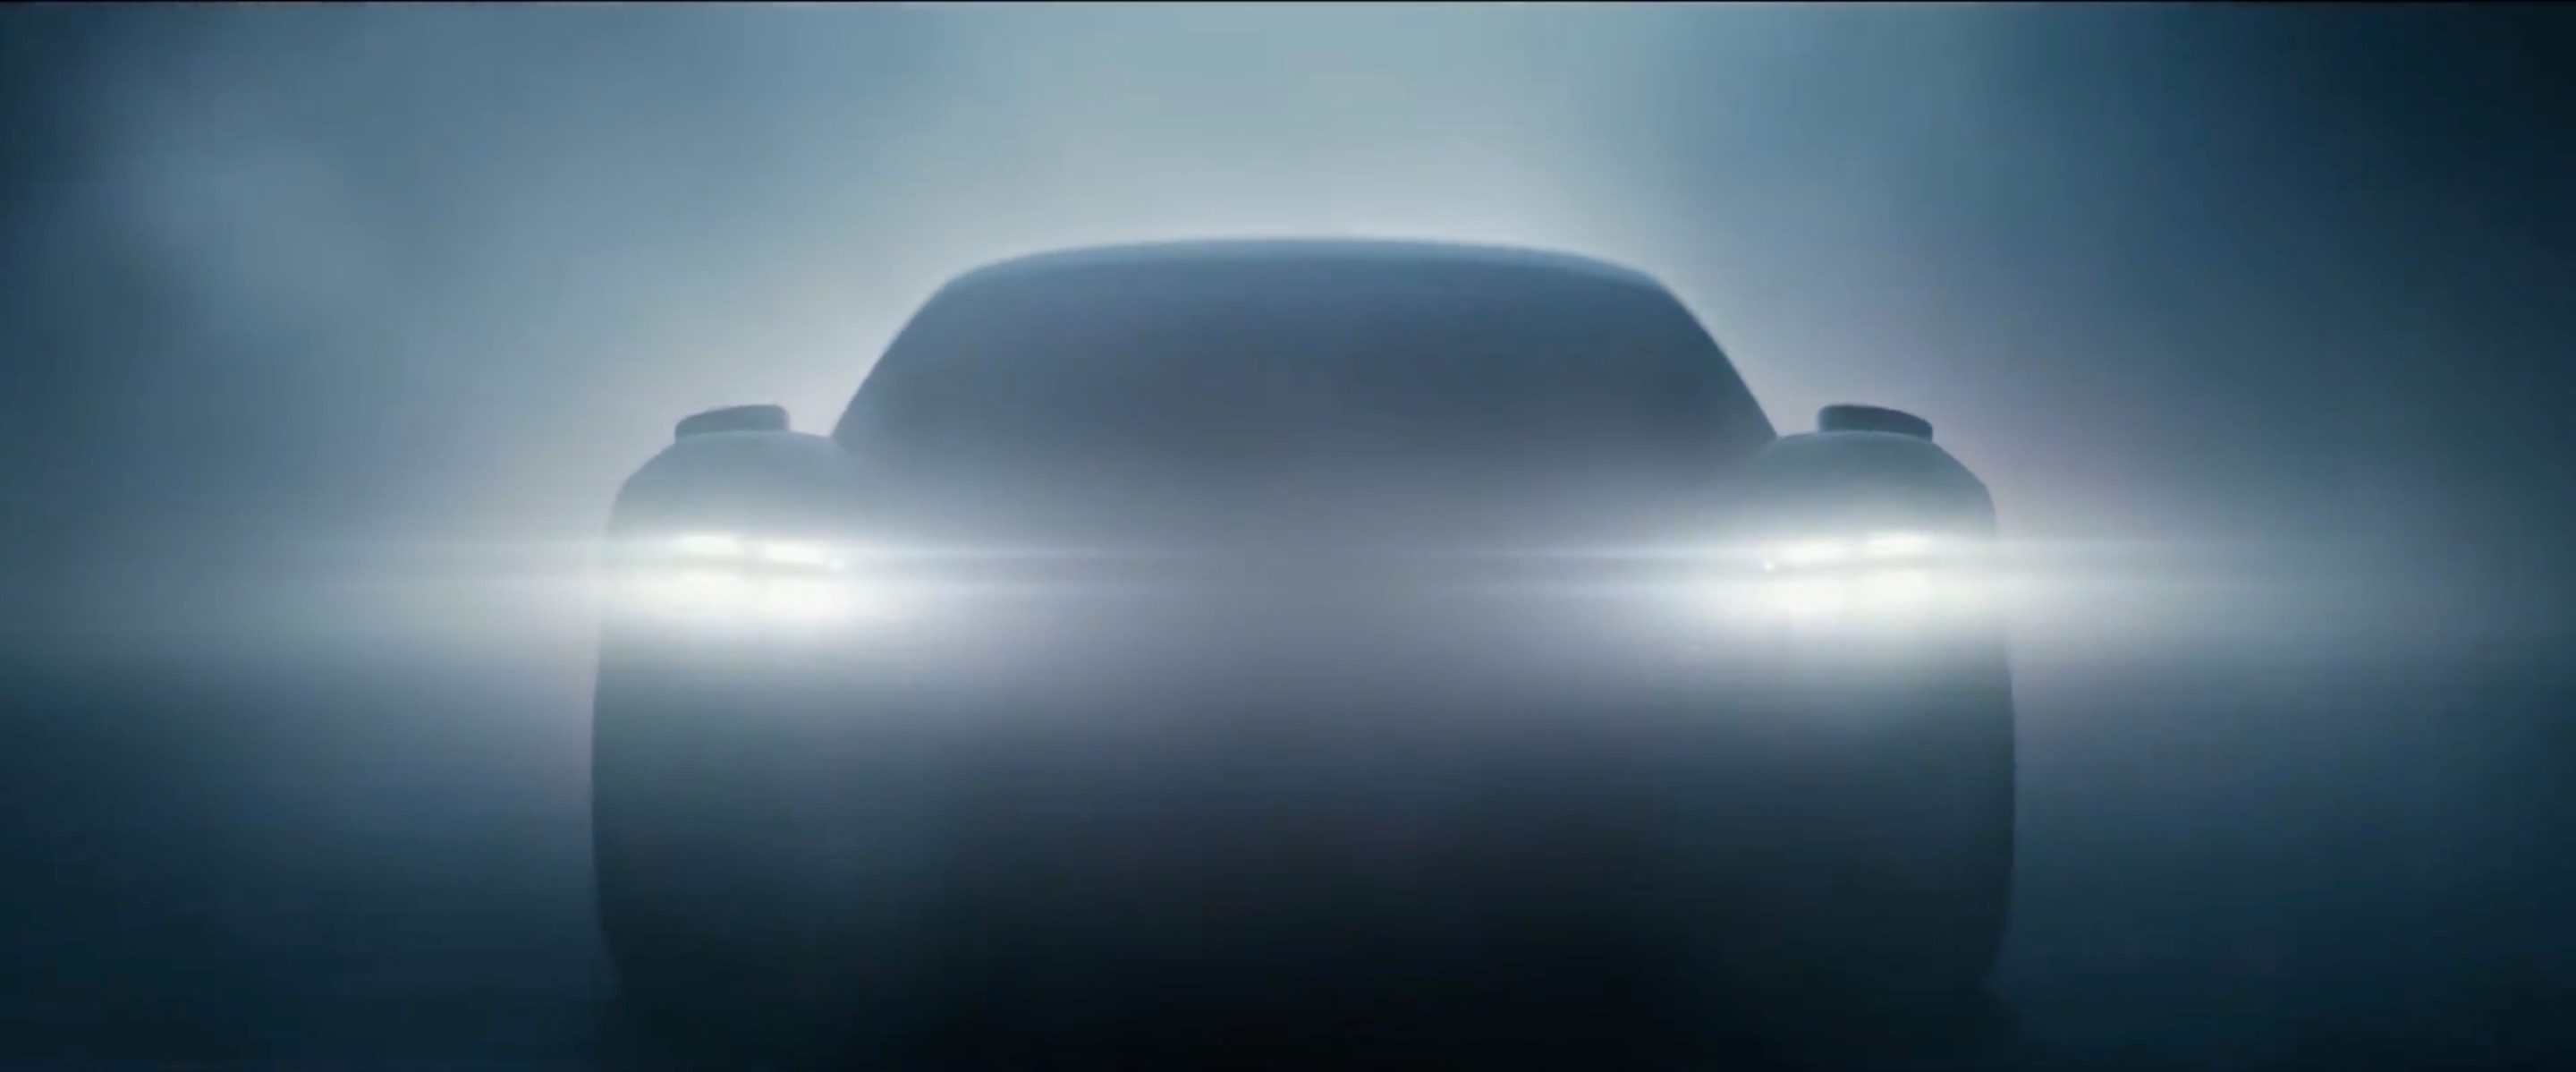 Porsche releases first teaser images of new Taycan Mission E 2880x1198